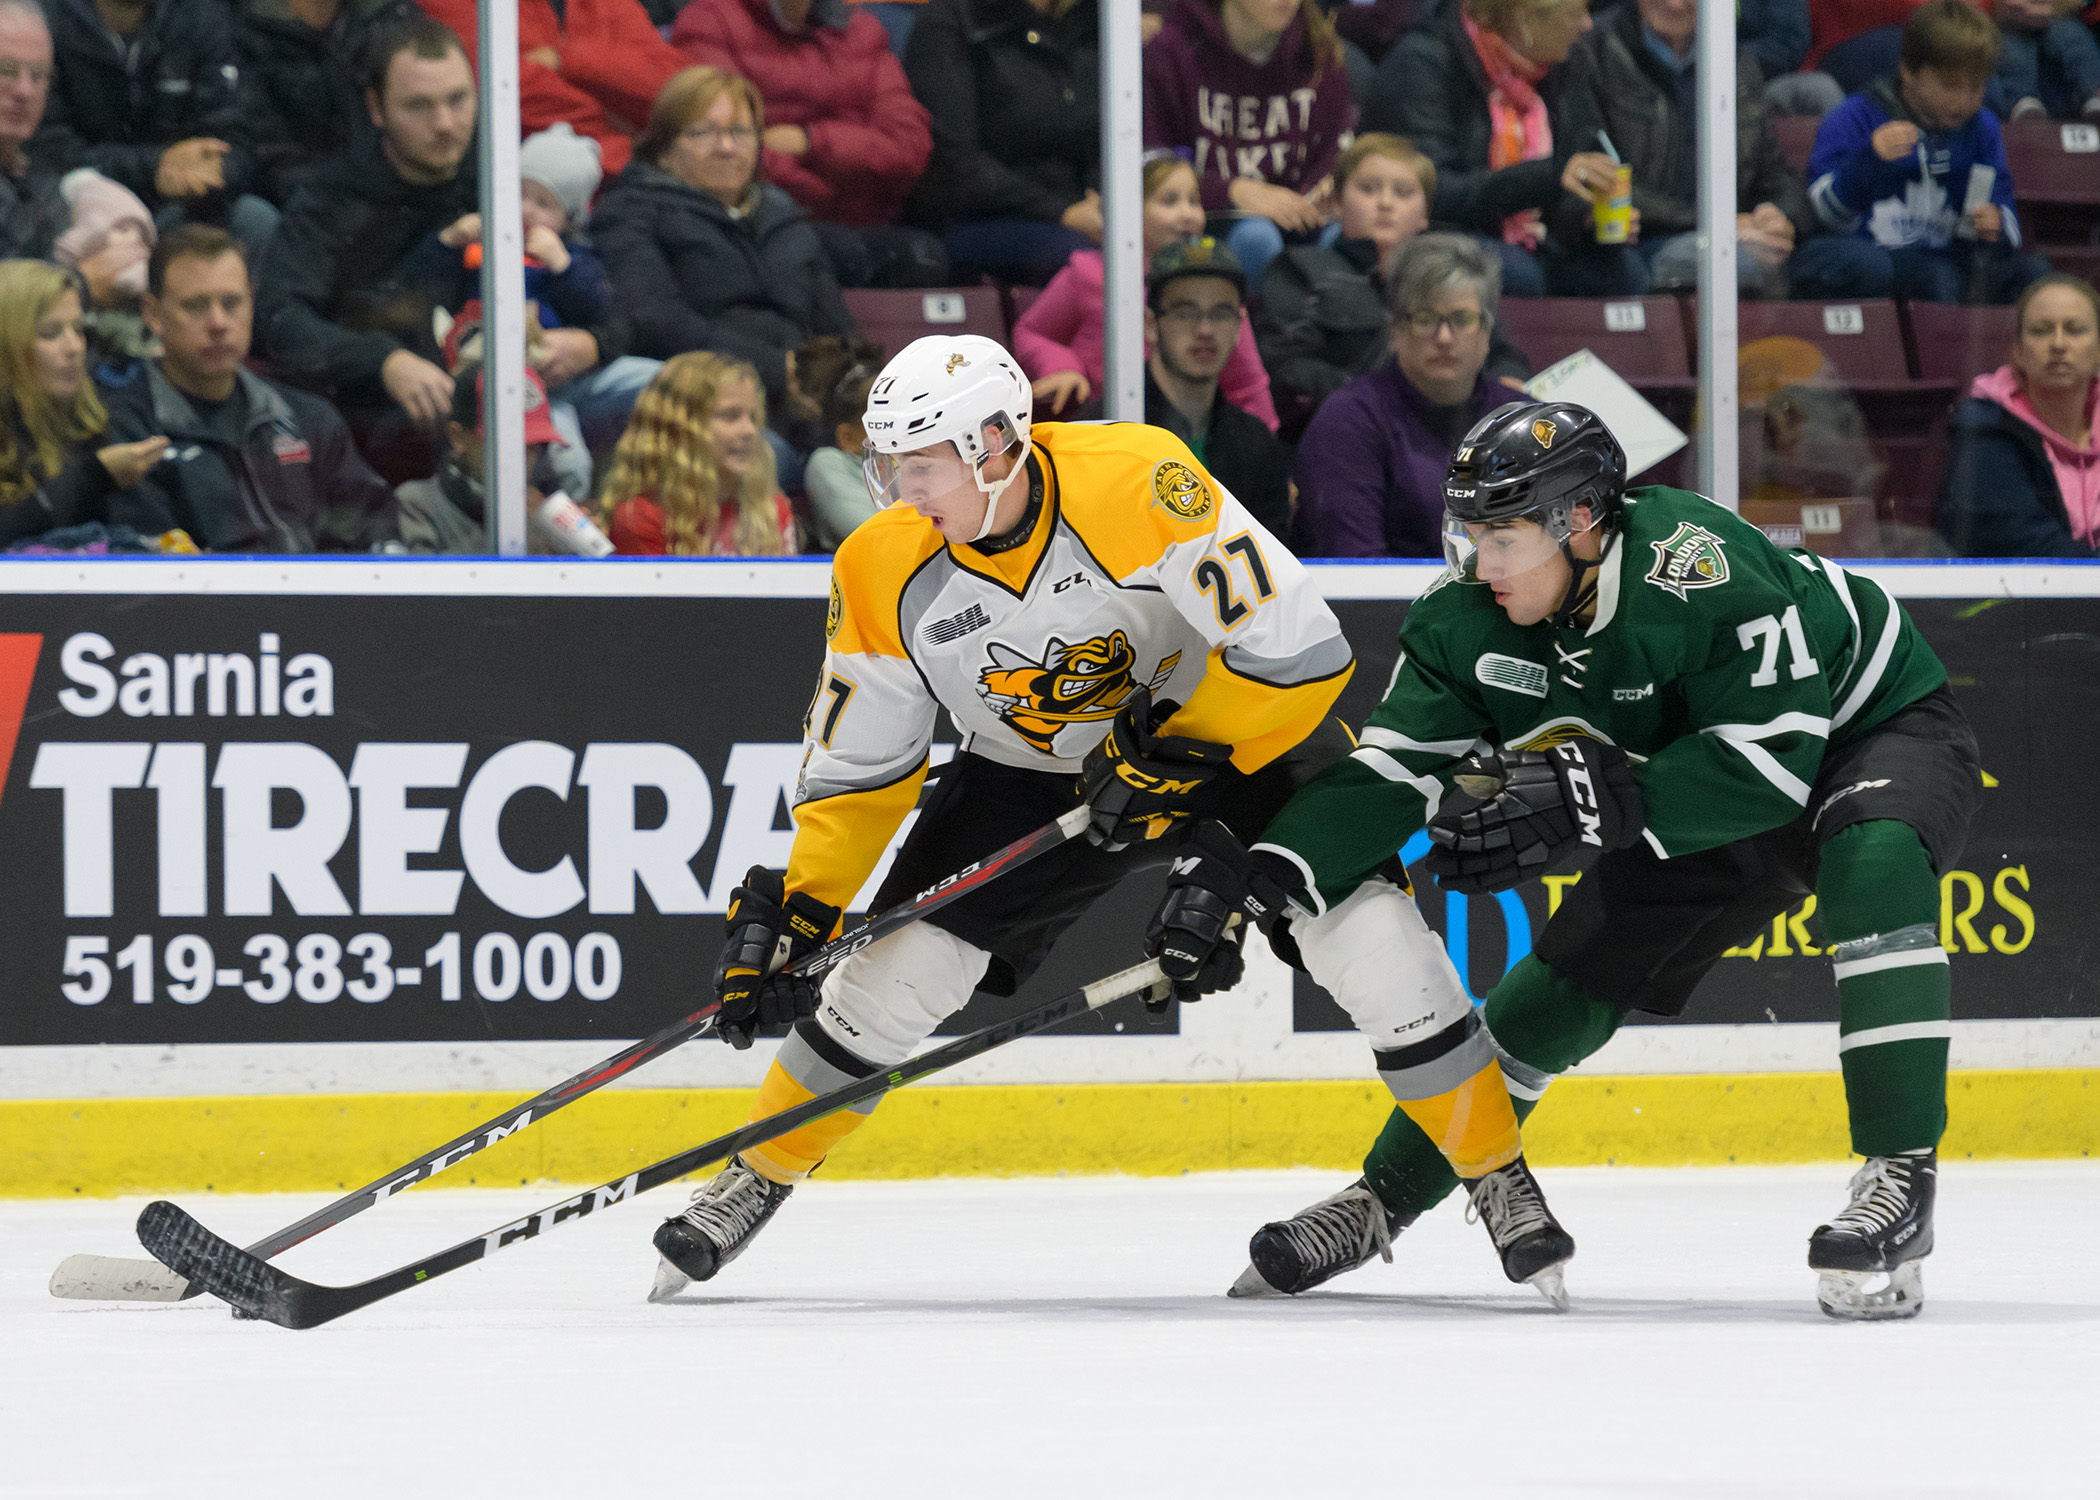 Knights double up Sting 4-2